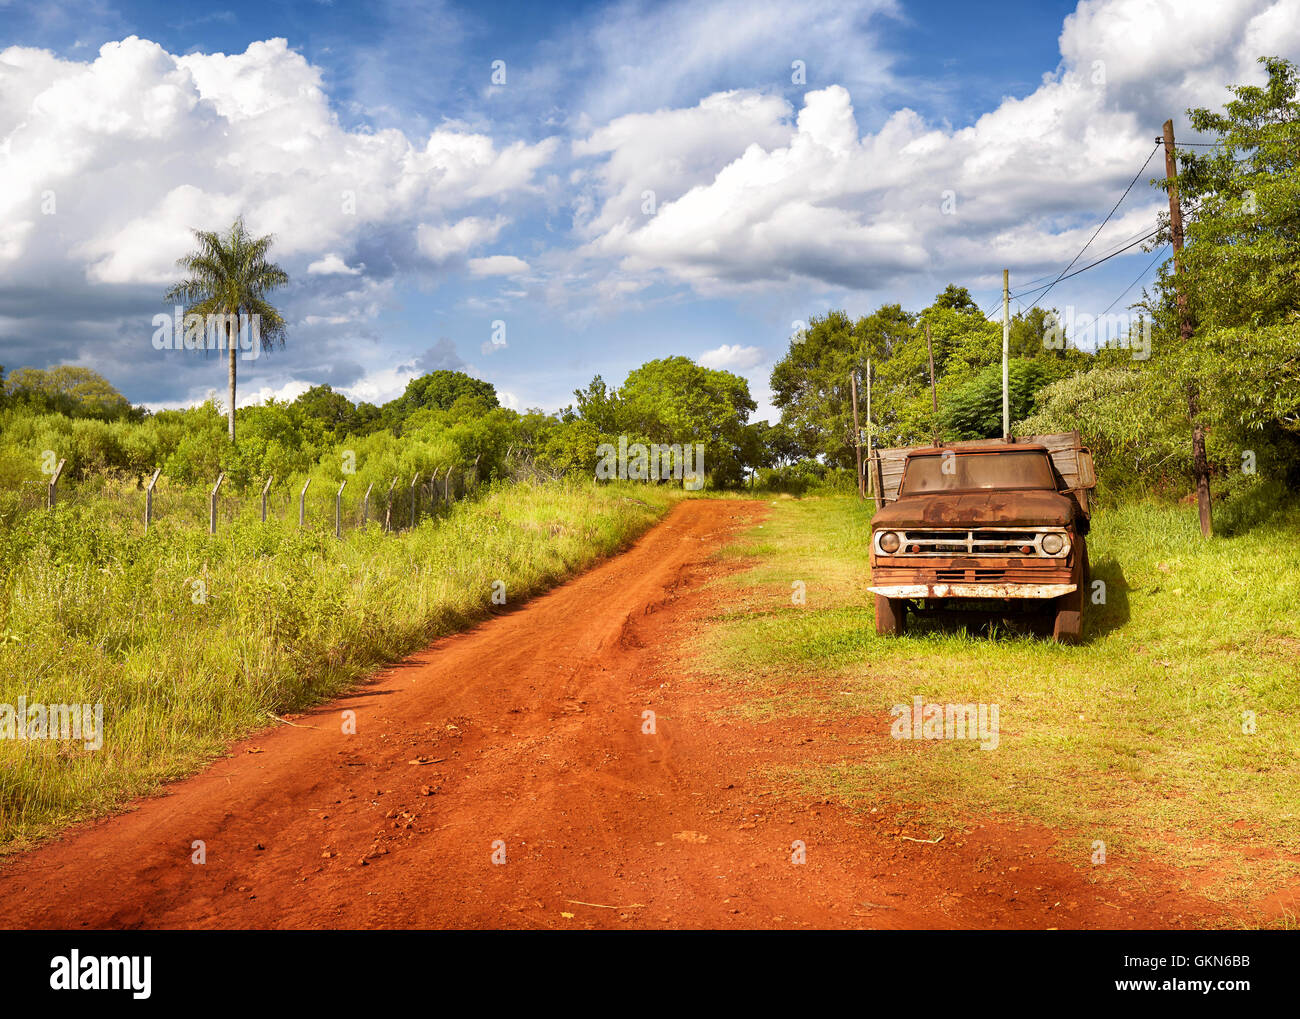 Red soil road and old abandoned truck. Landscape of Parana Misiones Province of Argentina. countryside.  Rural Landscape. - Stock Image